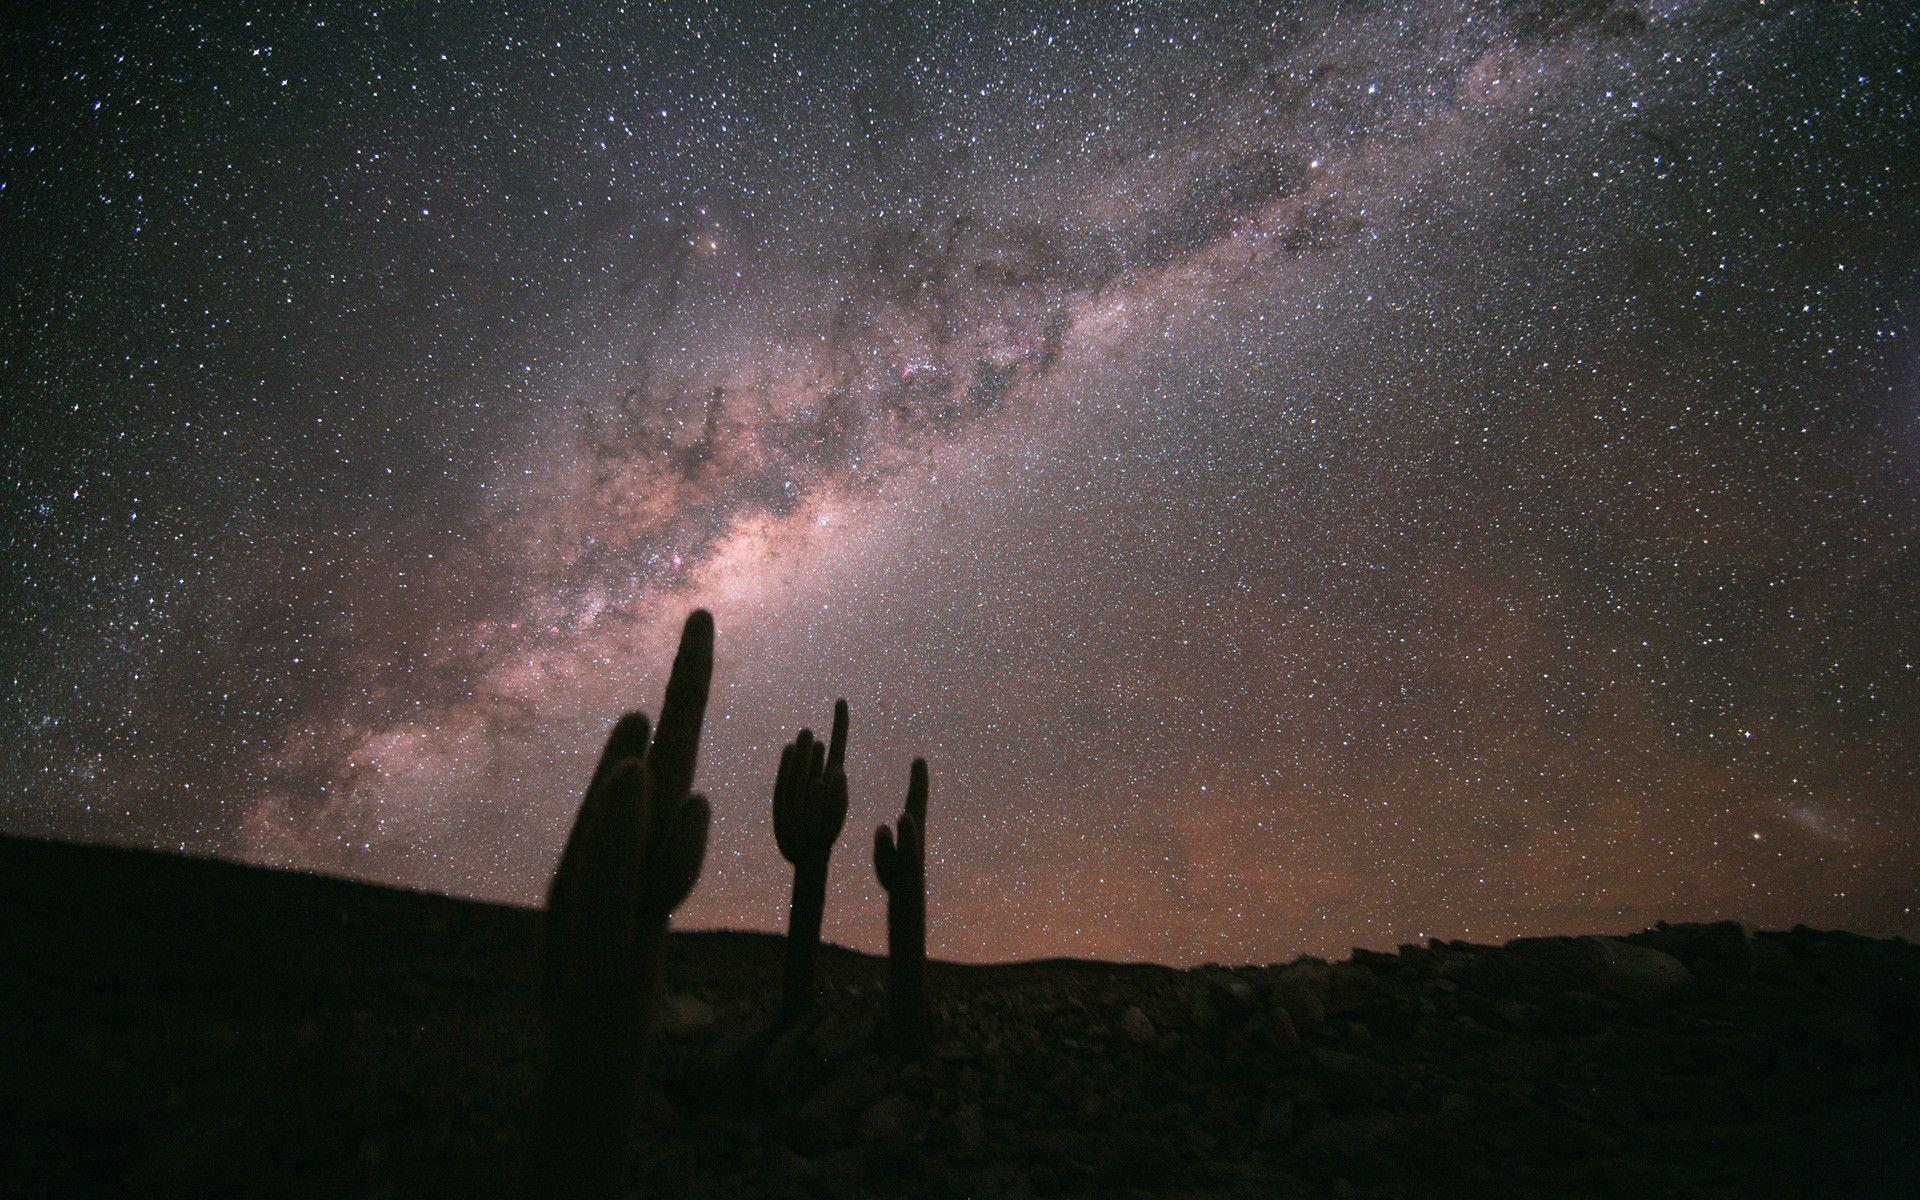 File:Echinopsis Atacamensis and the Milky Way